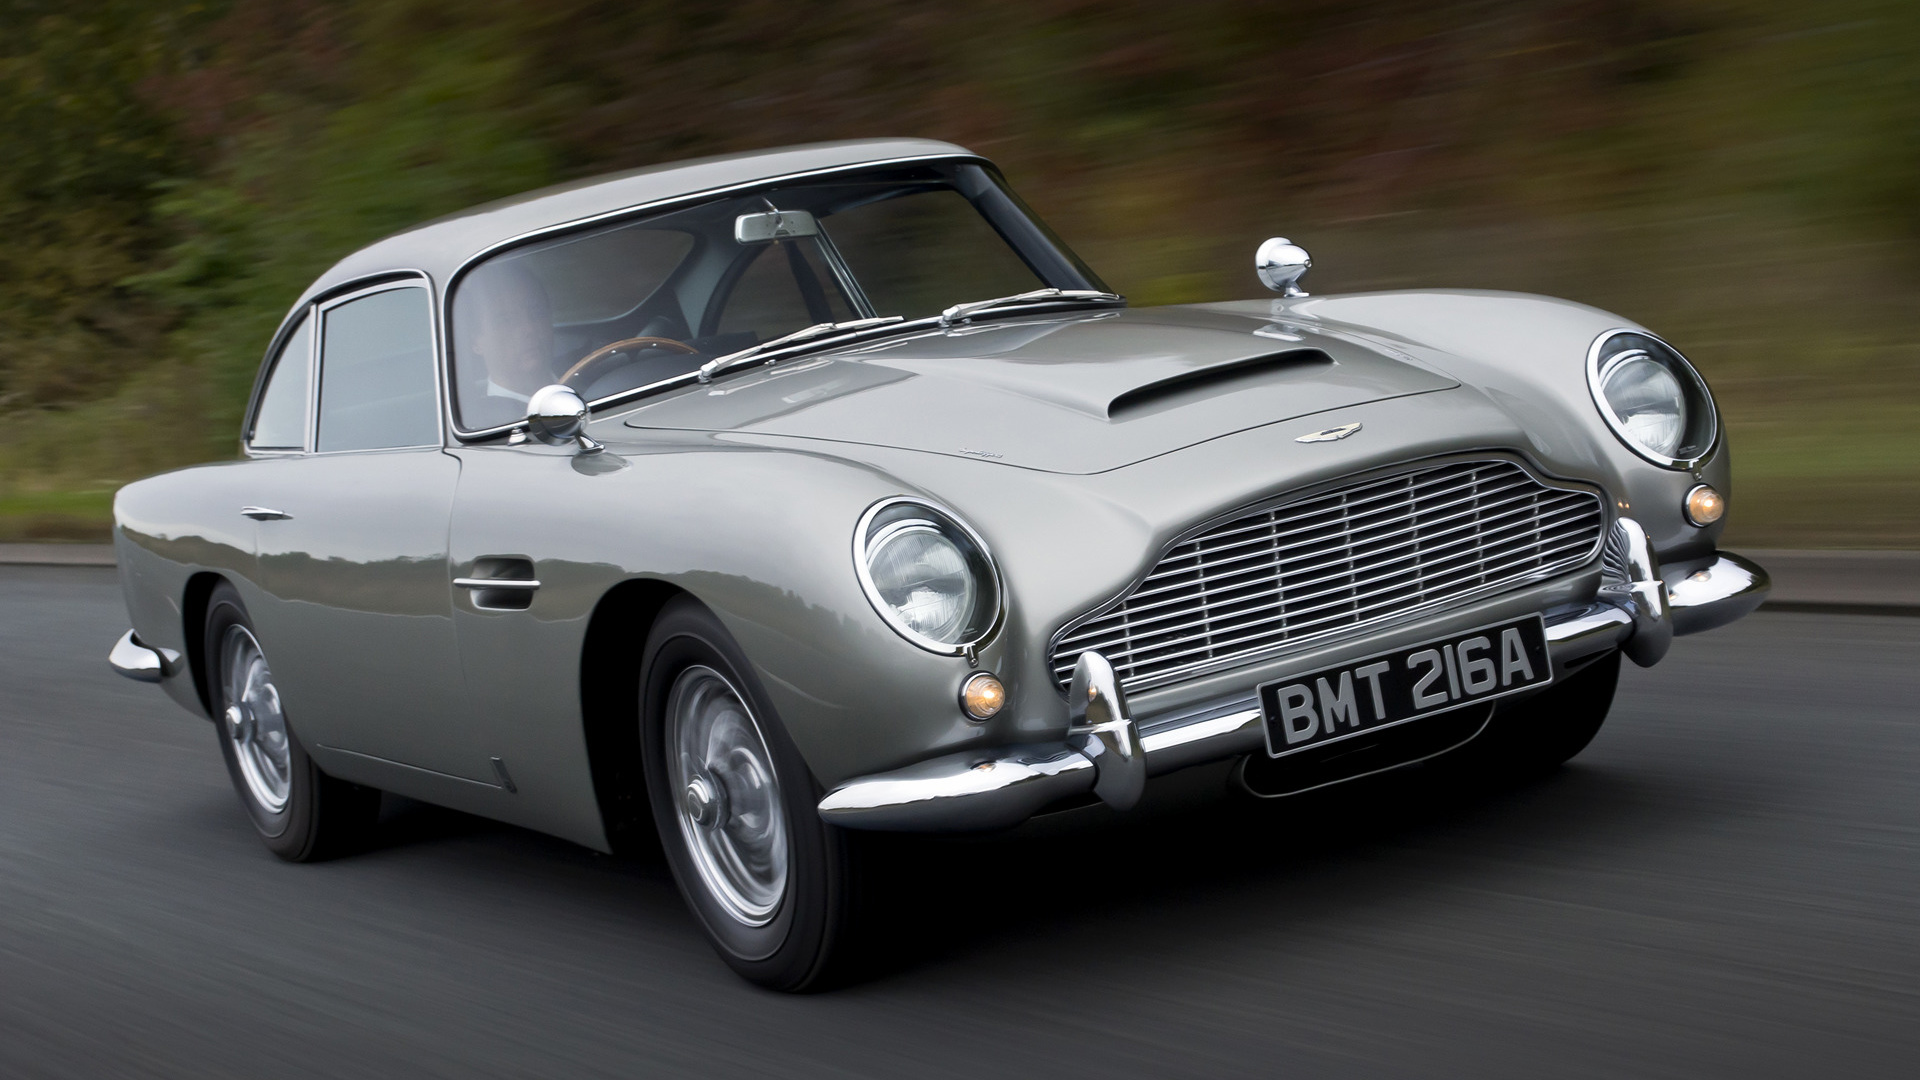 HD wallpapers high definition classic car wallpapers